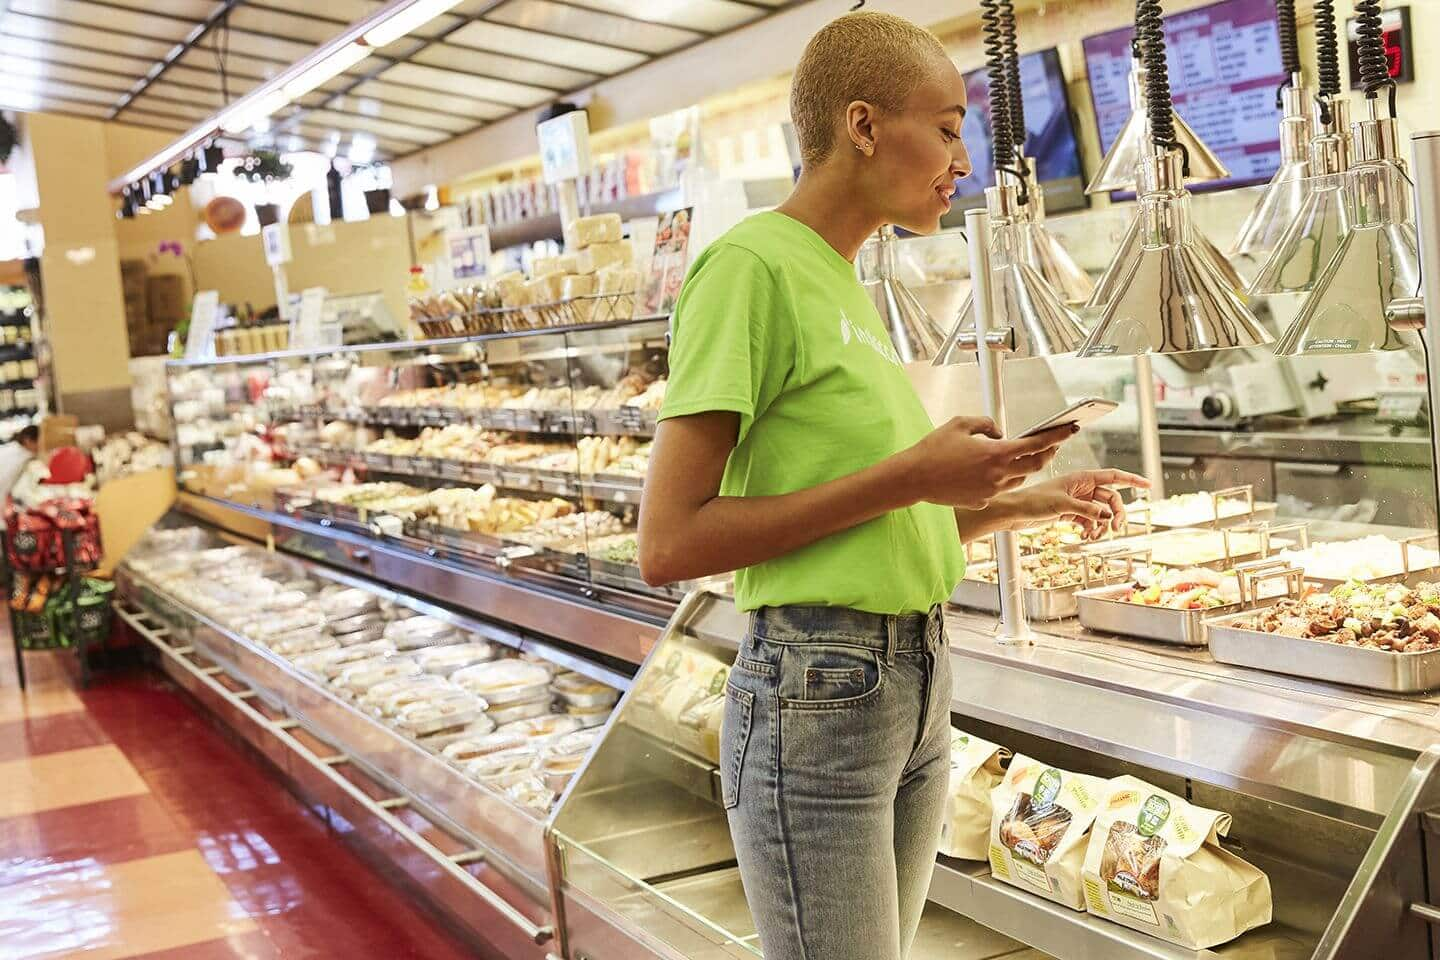 employee working serving sample food products